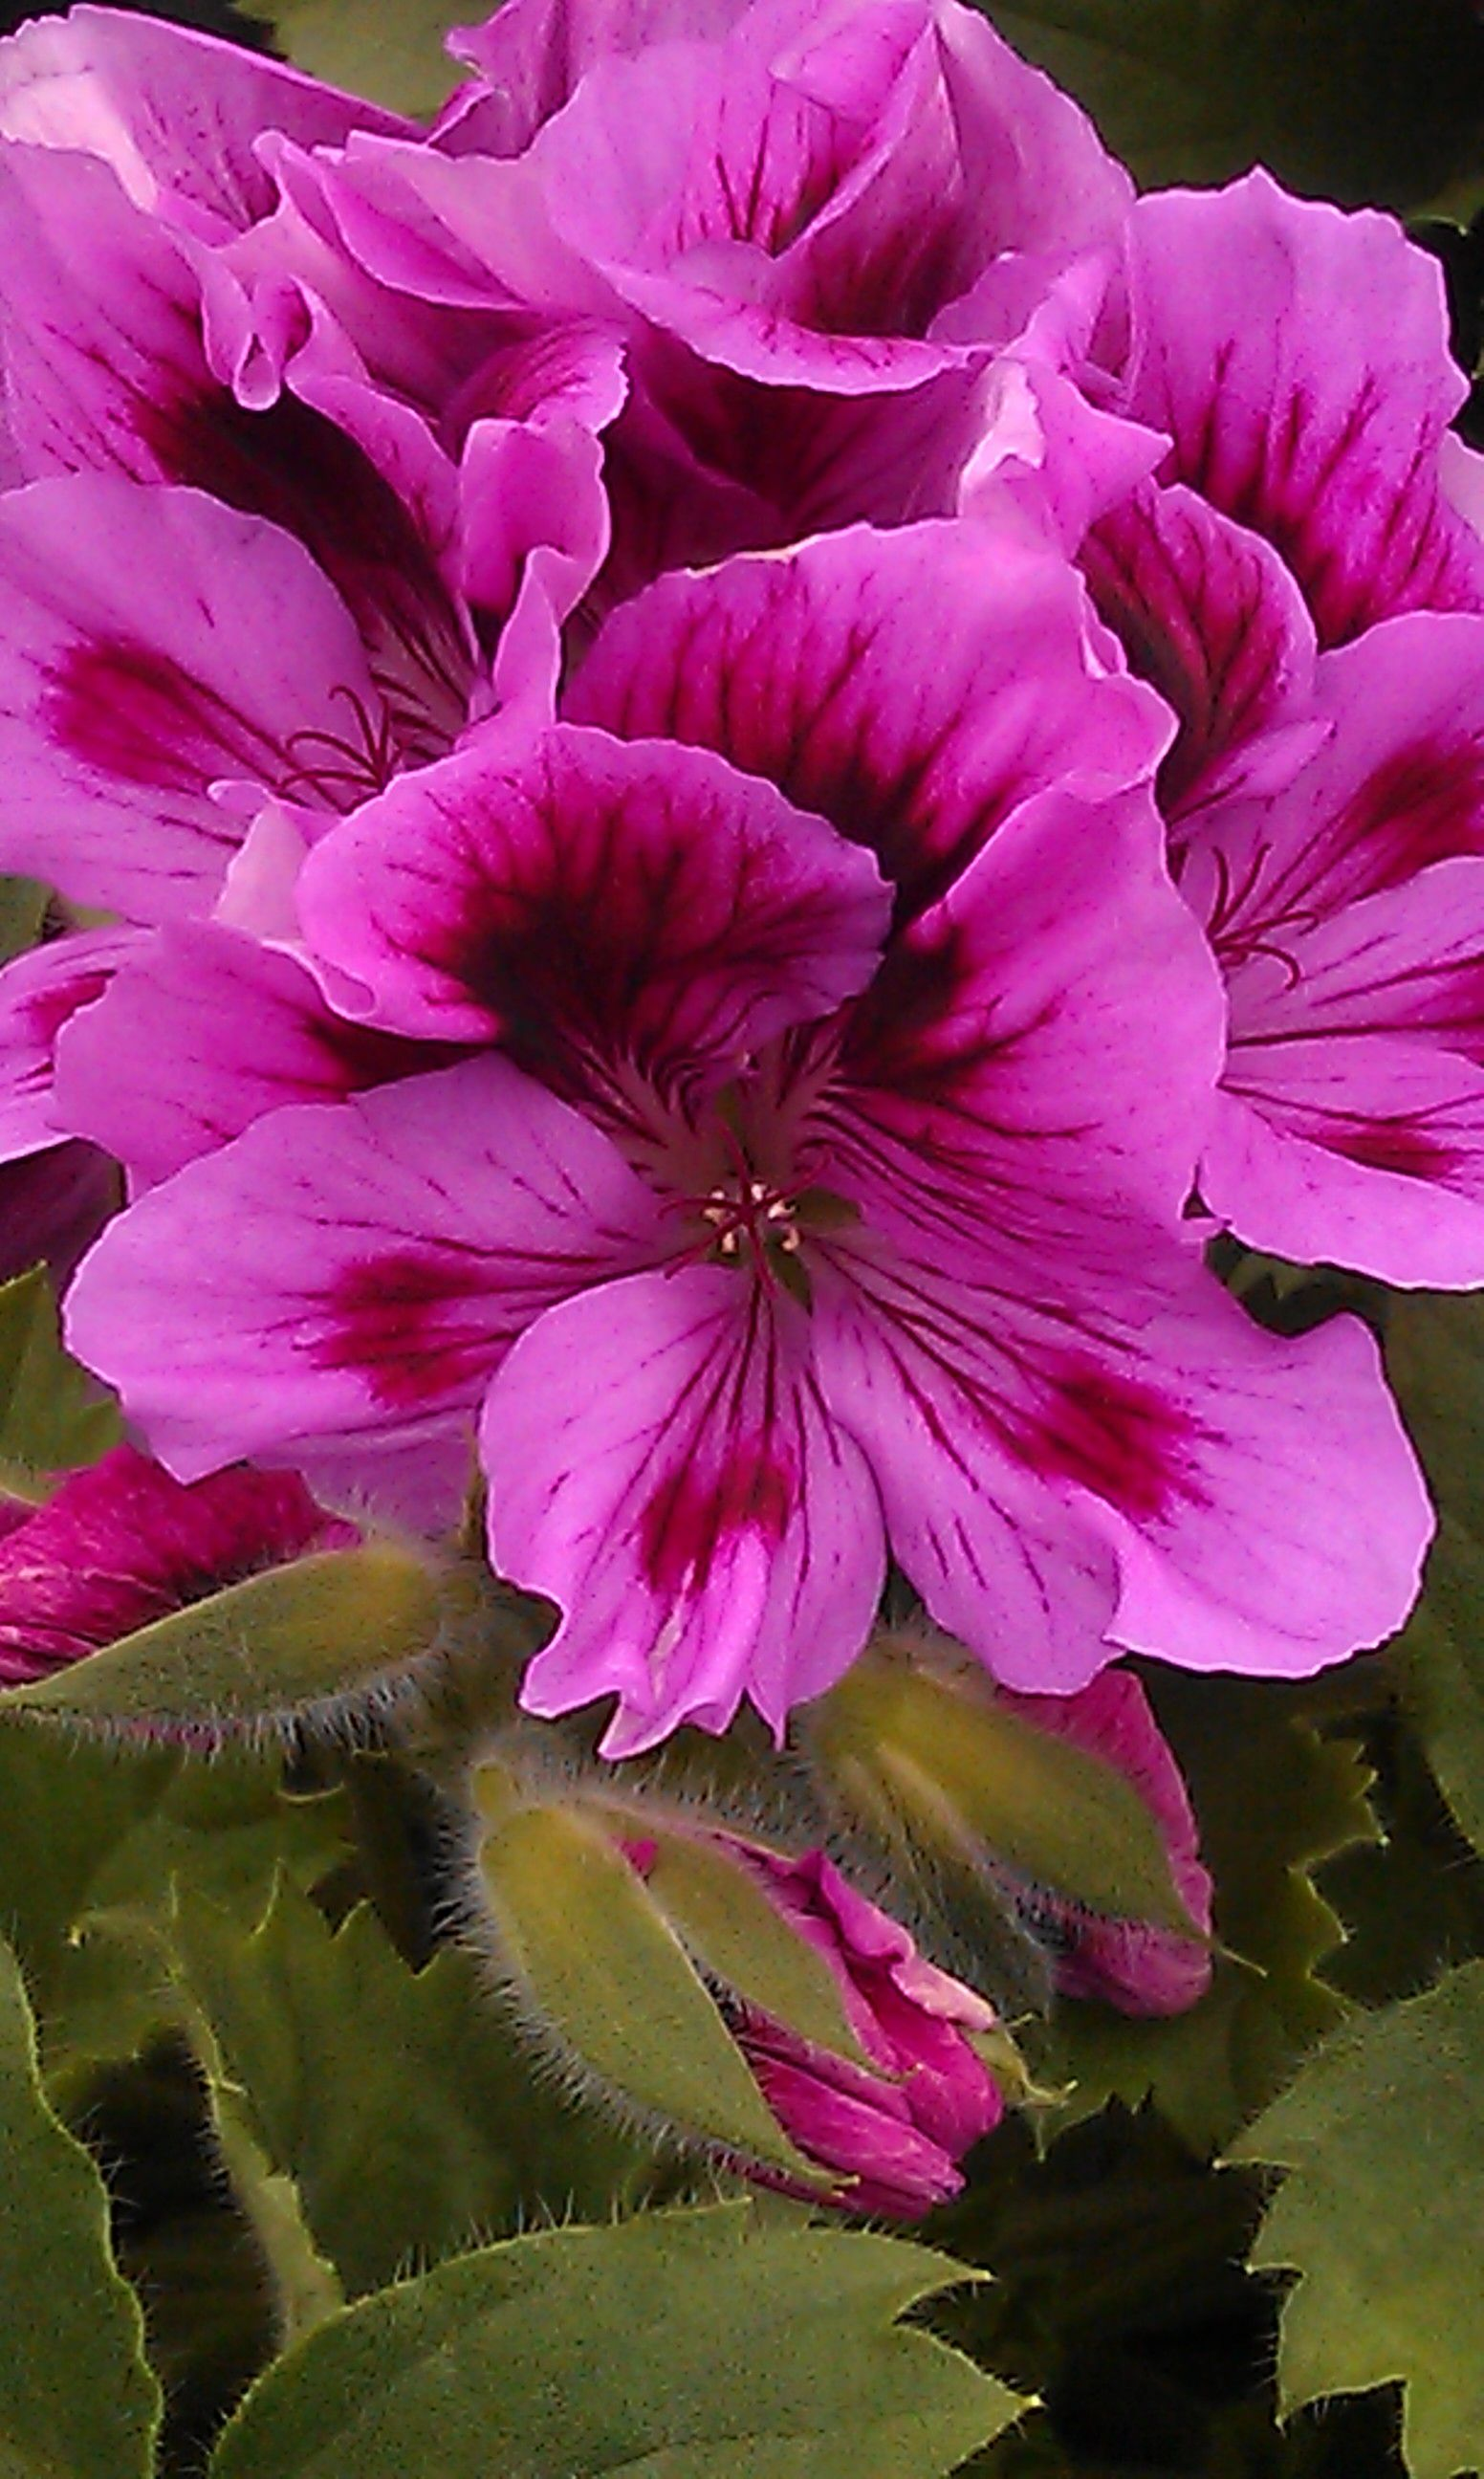 Glasregal Rot Beautiful Regal Pelargoniums From My Rotting Body Flowers Shall